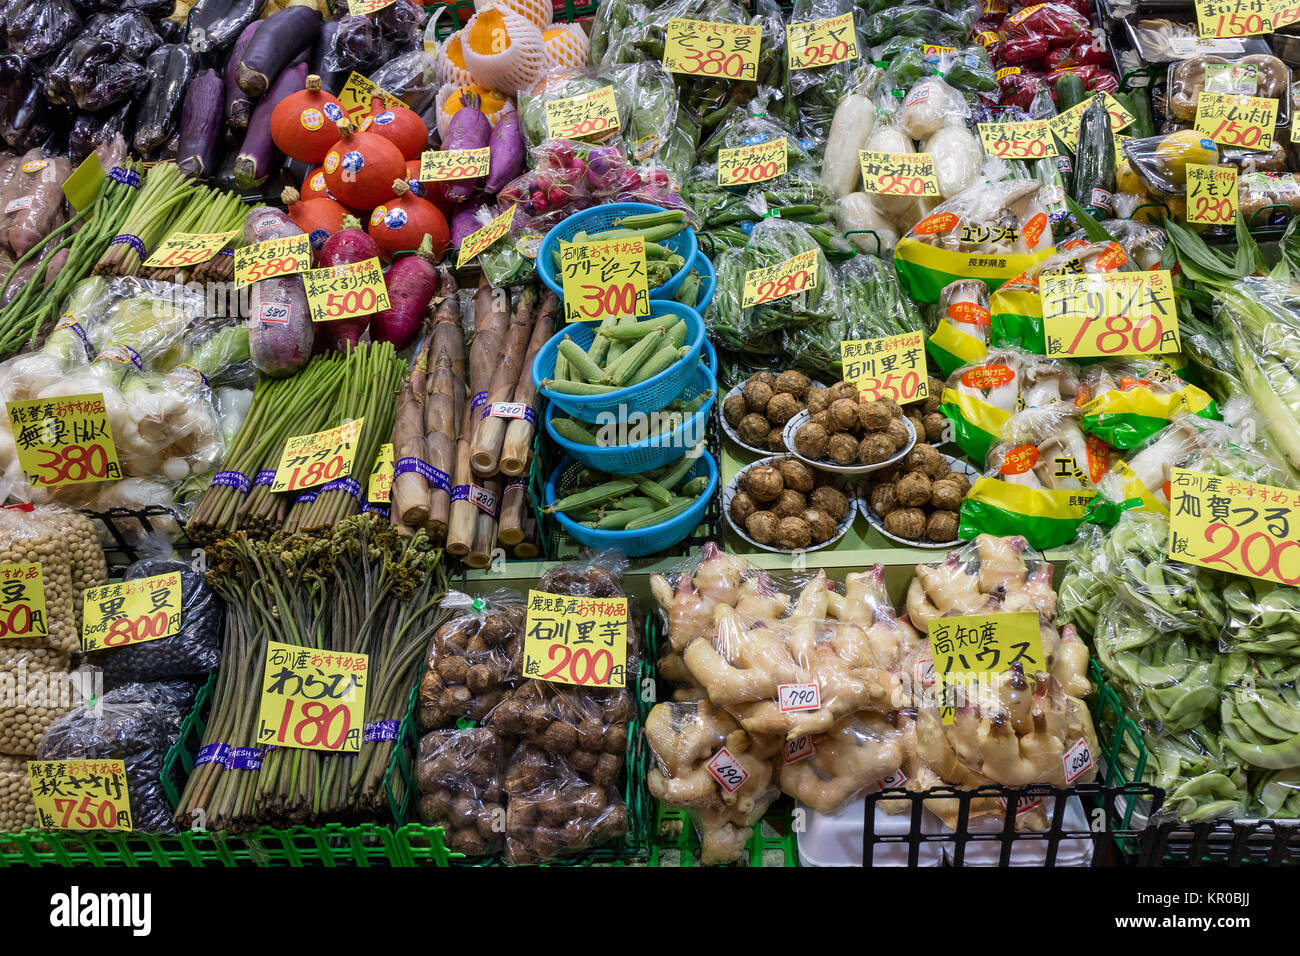 Kanazawa - Japan, June 8, 2017: Variety of fresh vegetables and price tags at the Omicho Market - Stock Image